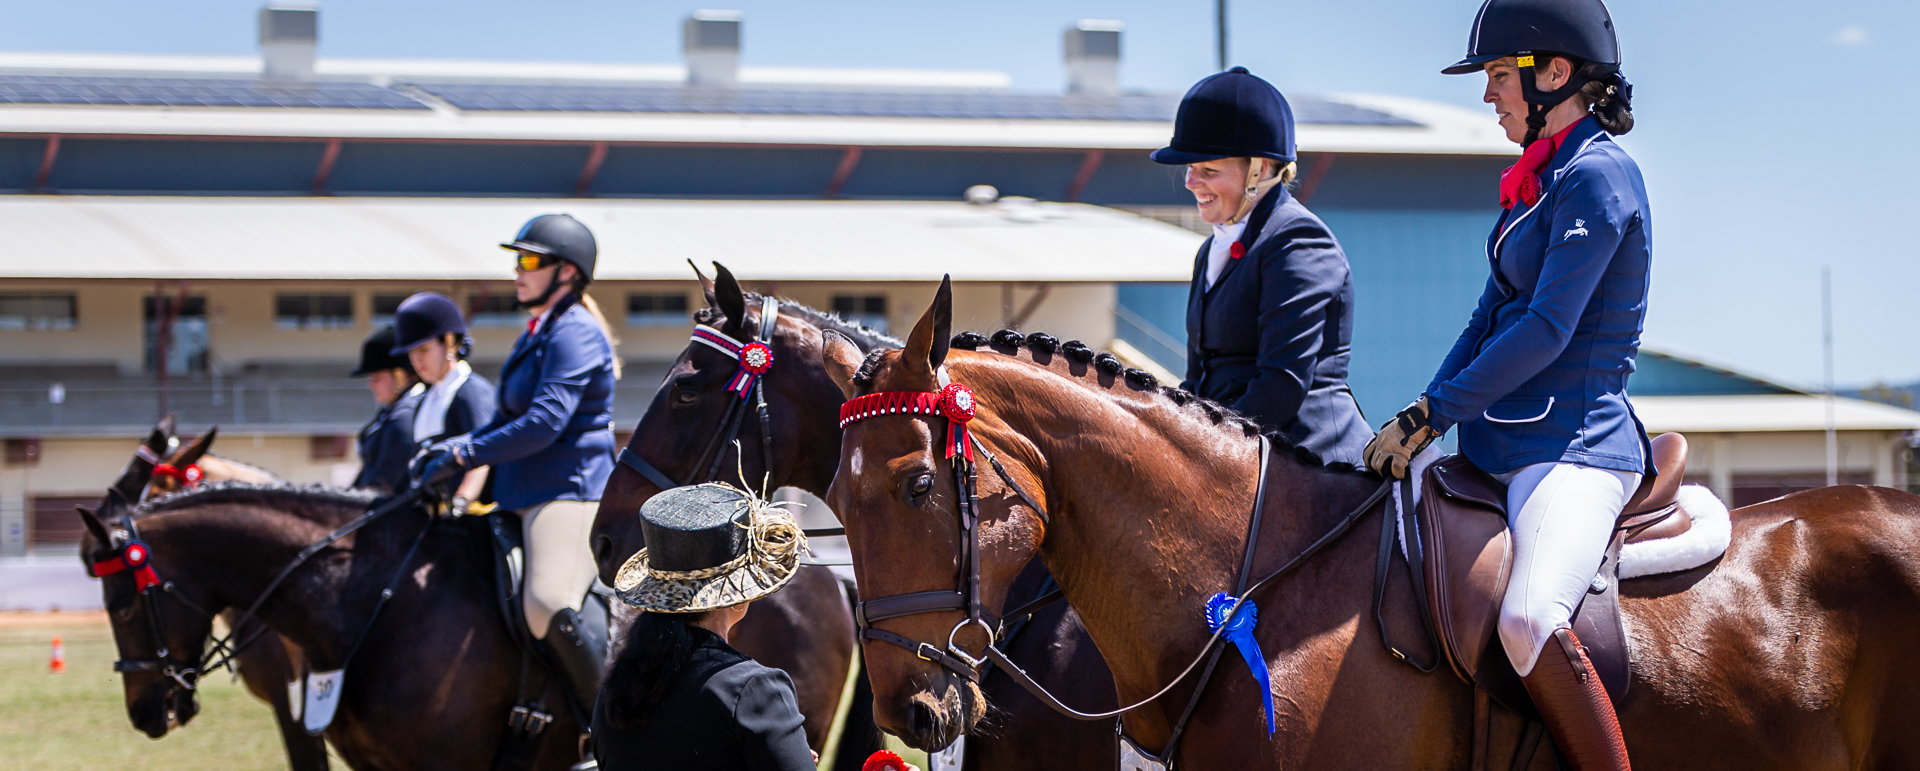 2021 SAQ State Hacking and Harness Championships - Standardbred horses lined up.